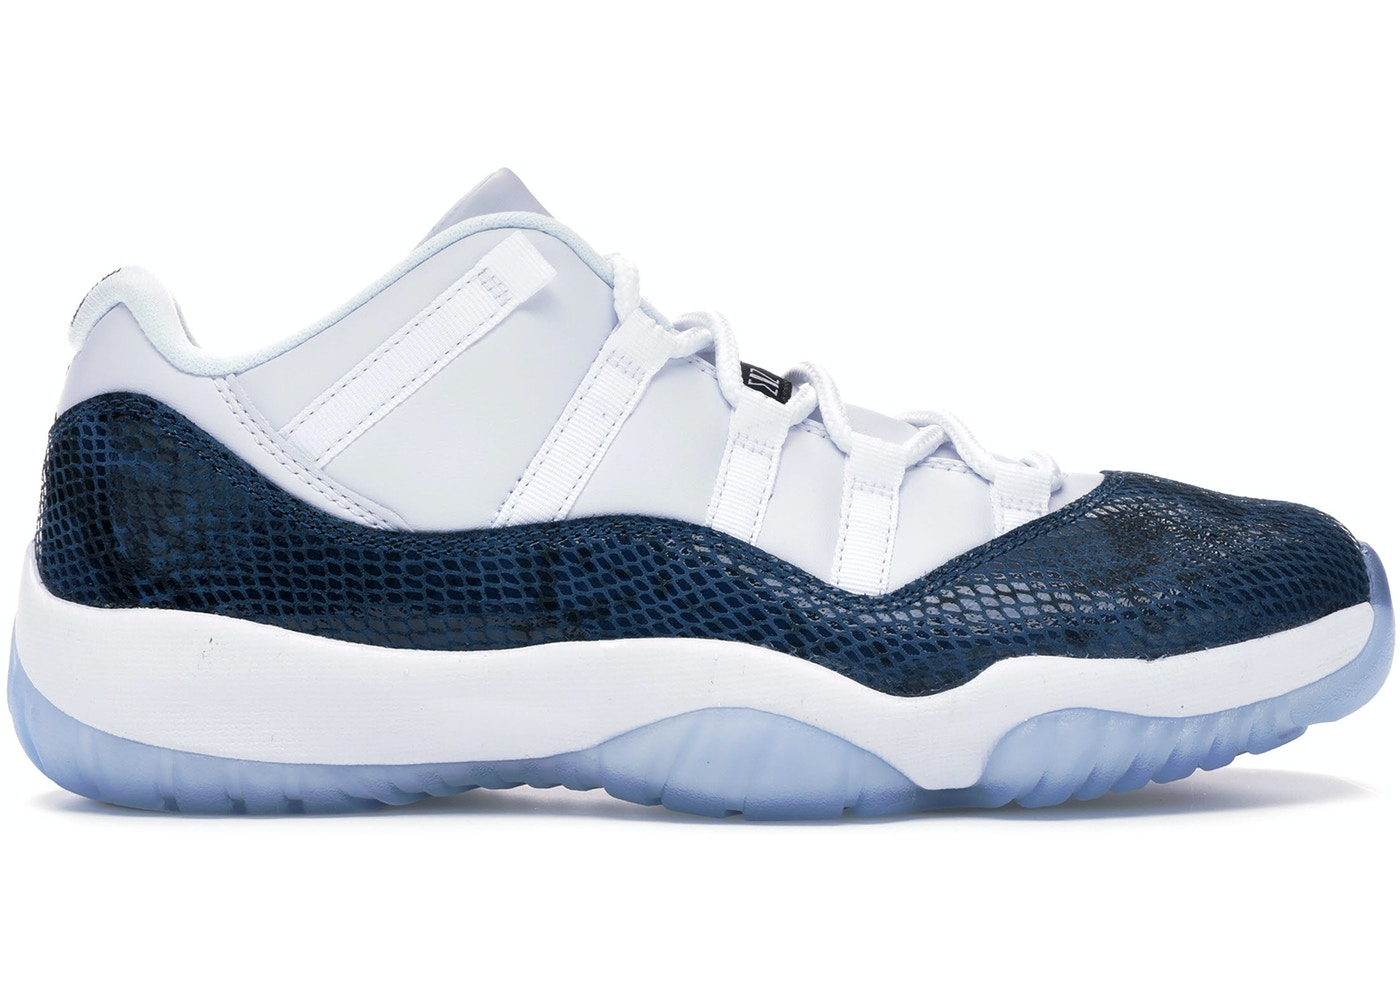 82142e17978 Sell. or Ask. Size 8. View All Bids. Jordan 11 Retro Low ...